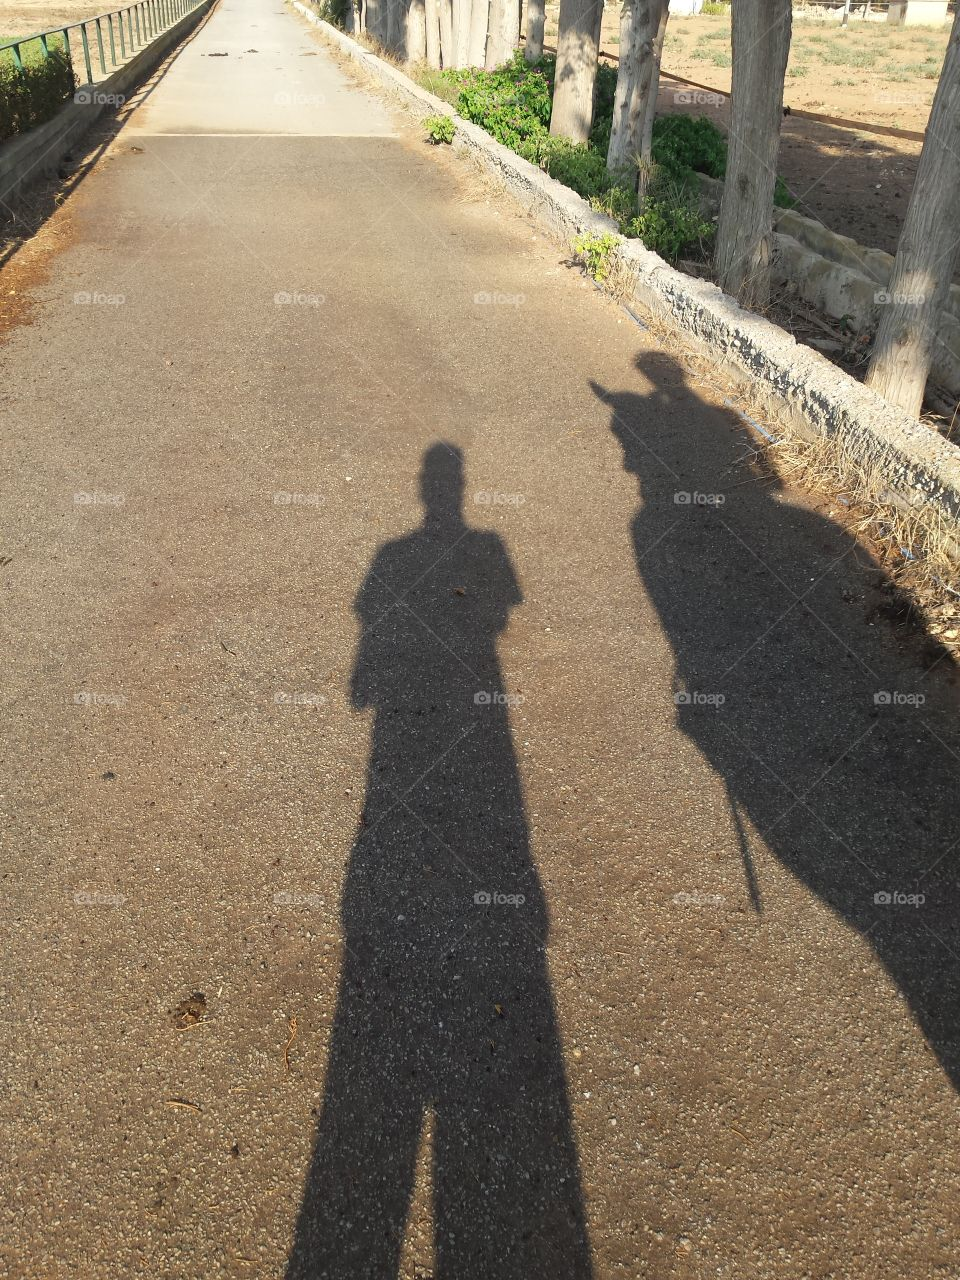 Two near shadows walking on a street, one of them on a horse, when sunset starting. Meadow and trees on right side